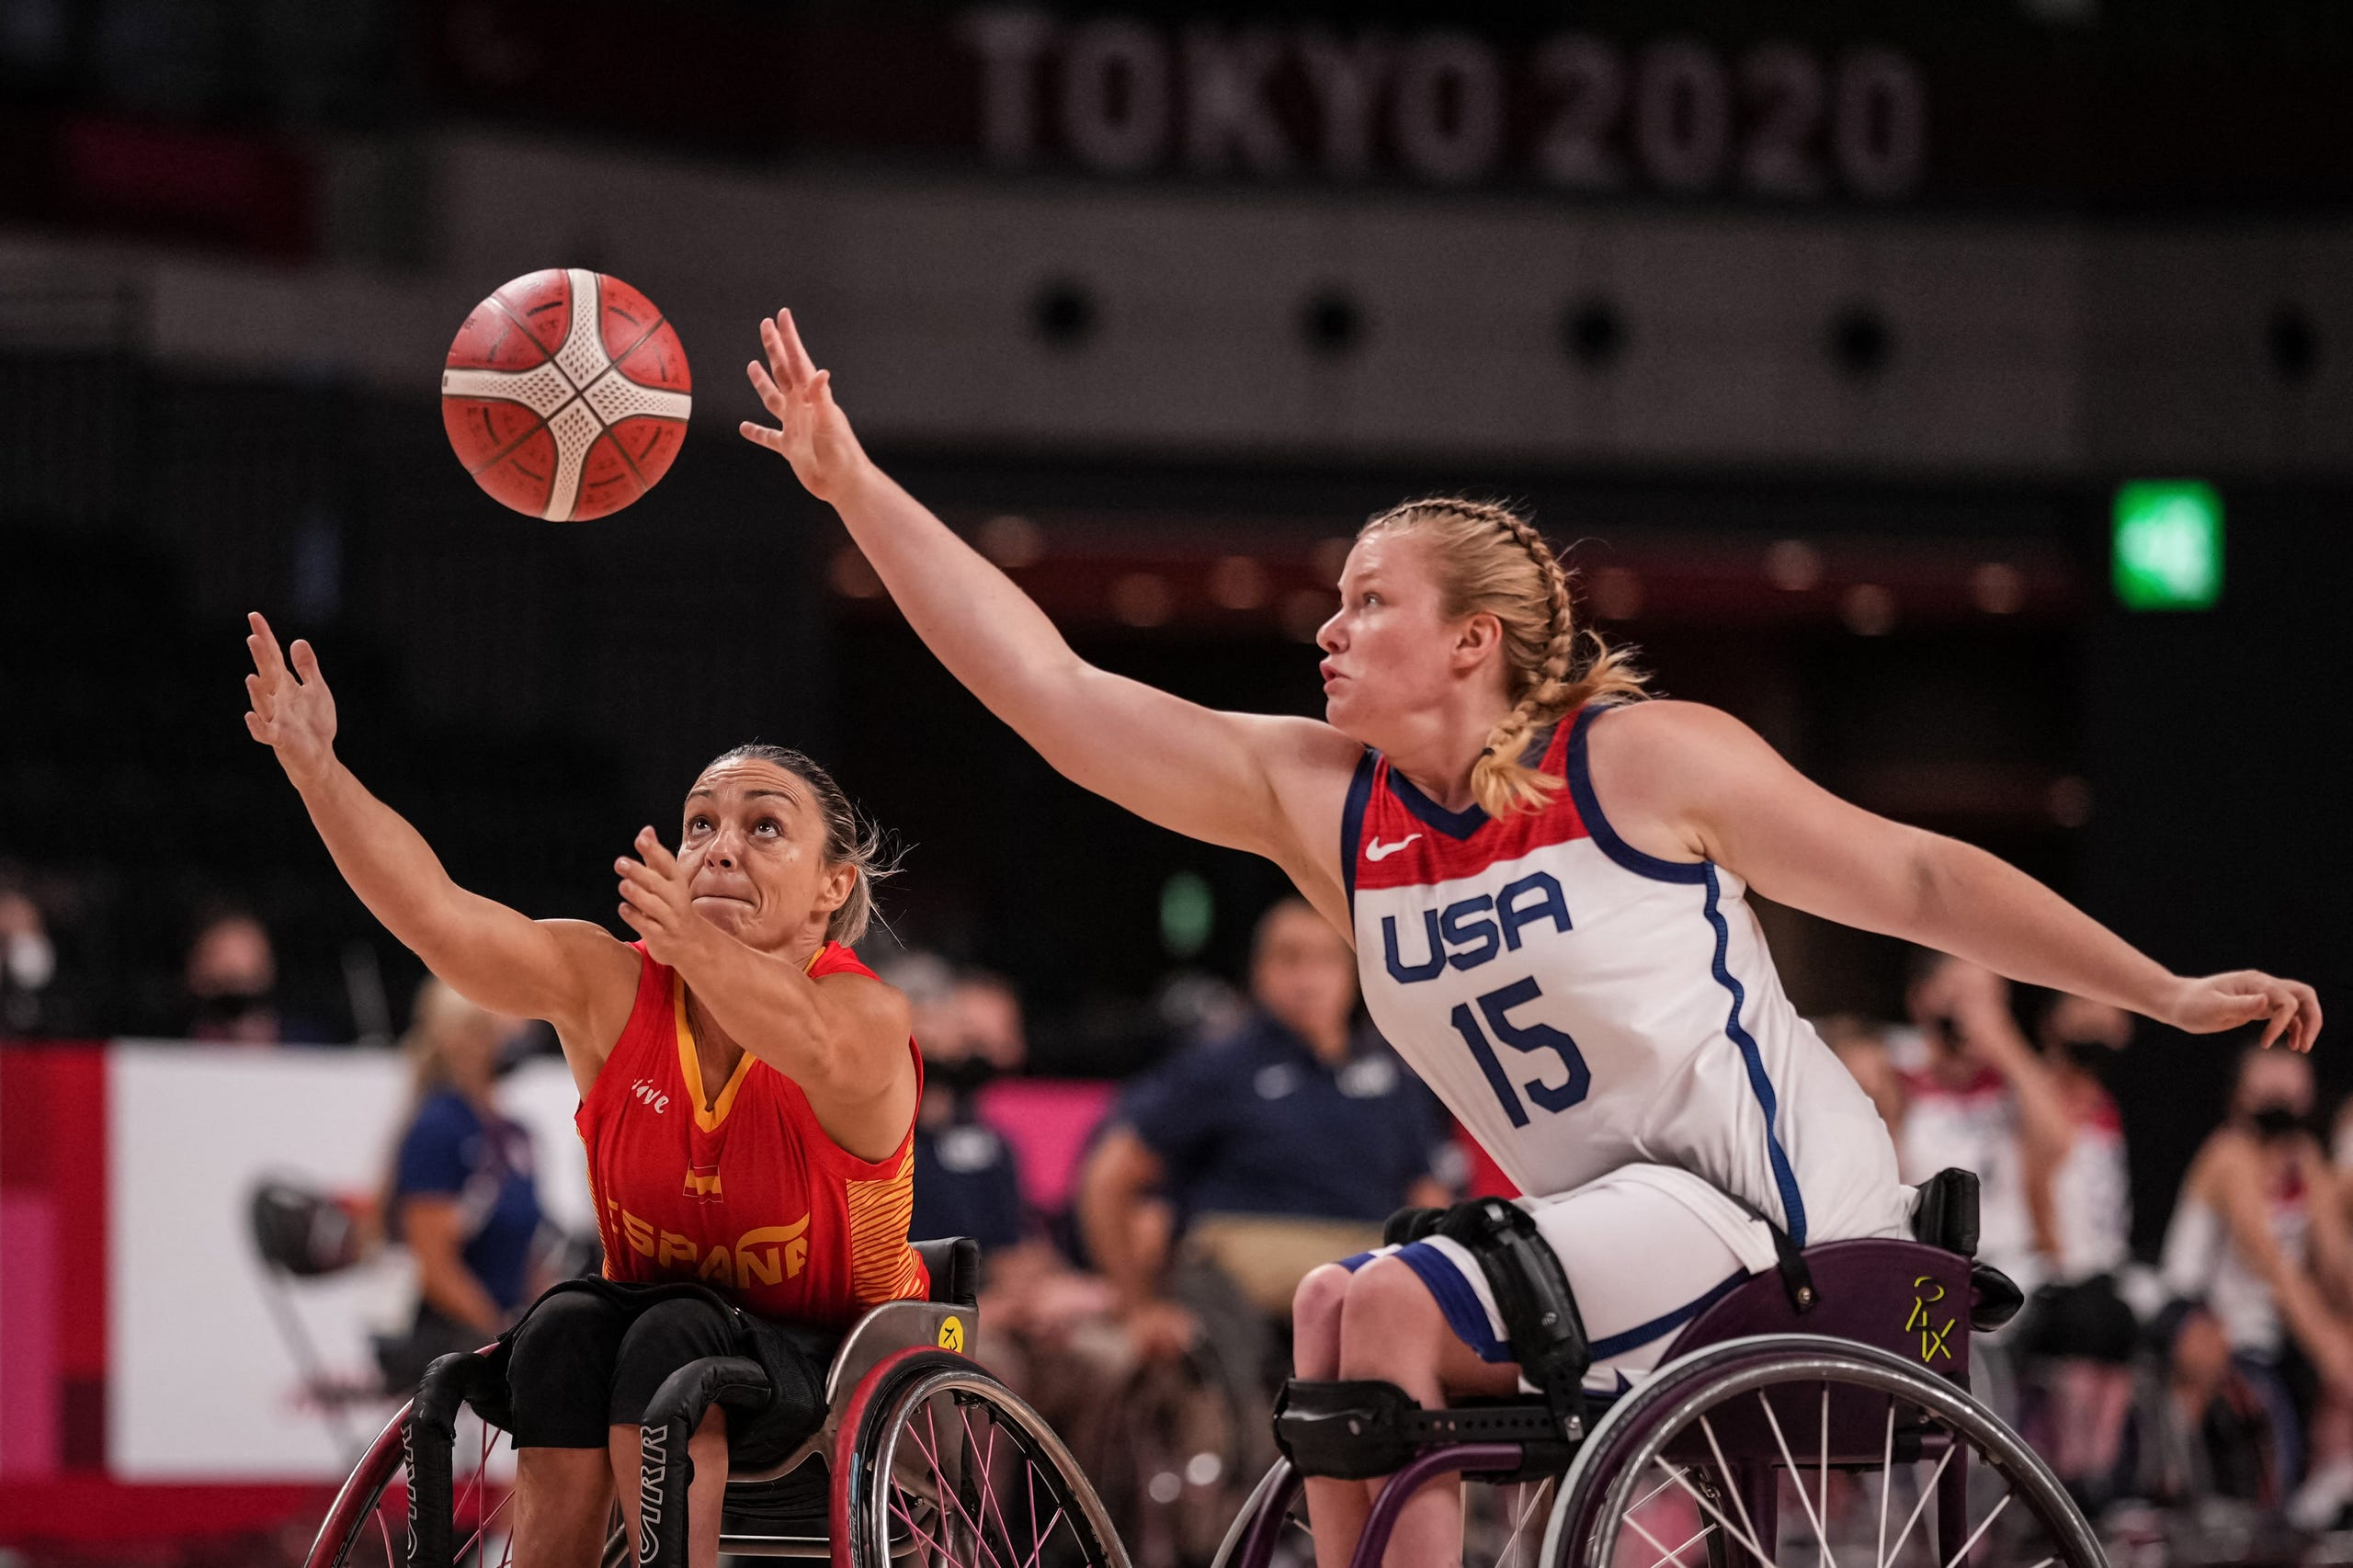 August 26, 2021: Spain's Sonia Ruiz Escribano (L) and USA's Rose Hollermann reach for the ball during the women's wheelchair basketball preliminary round group B match between USA and Spain at the Tokyo 2020 Paralympic Games at Ariake Arena in Tokyo.